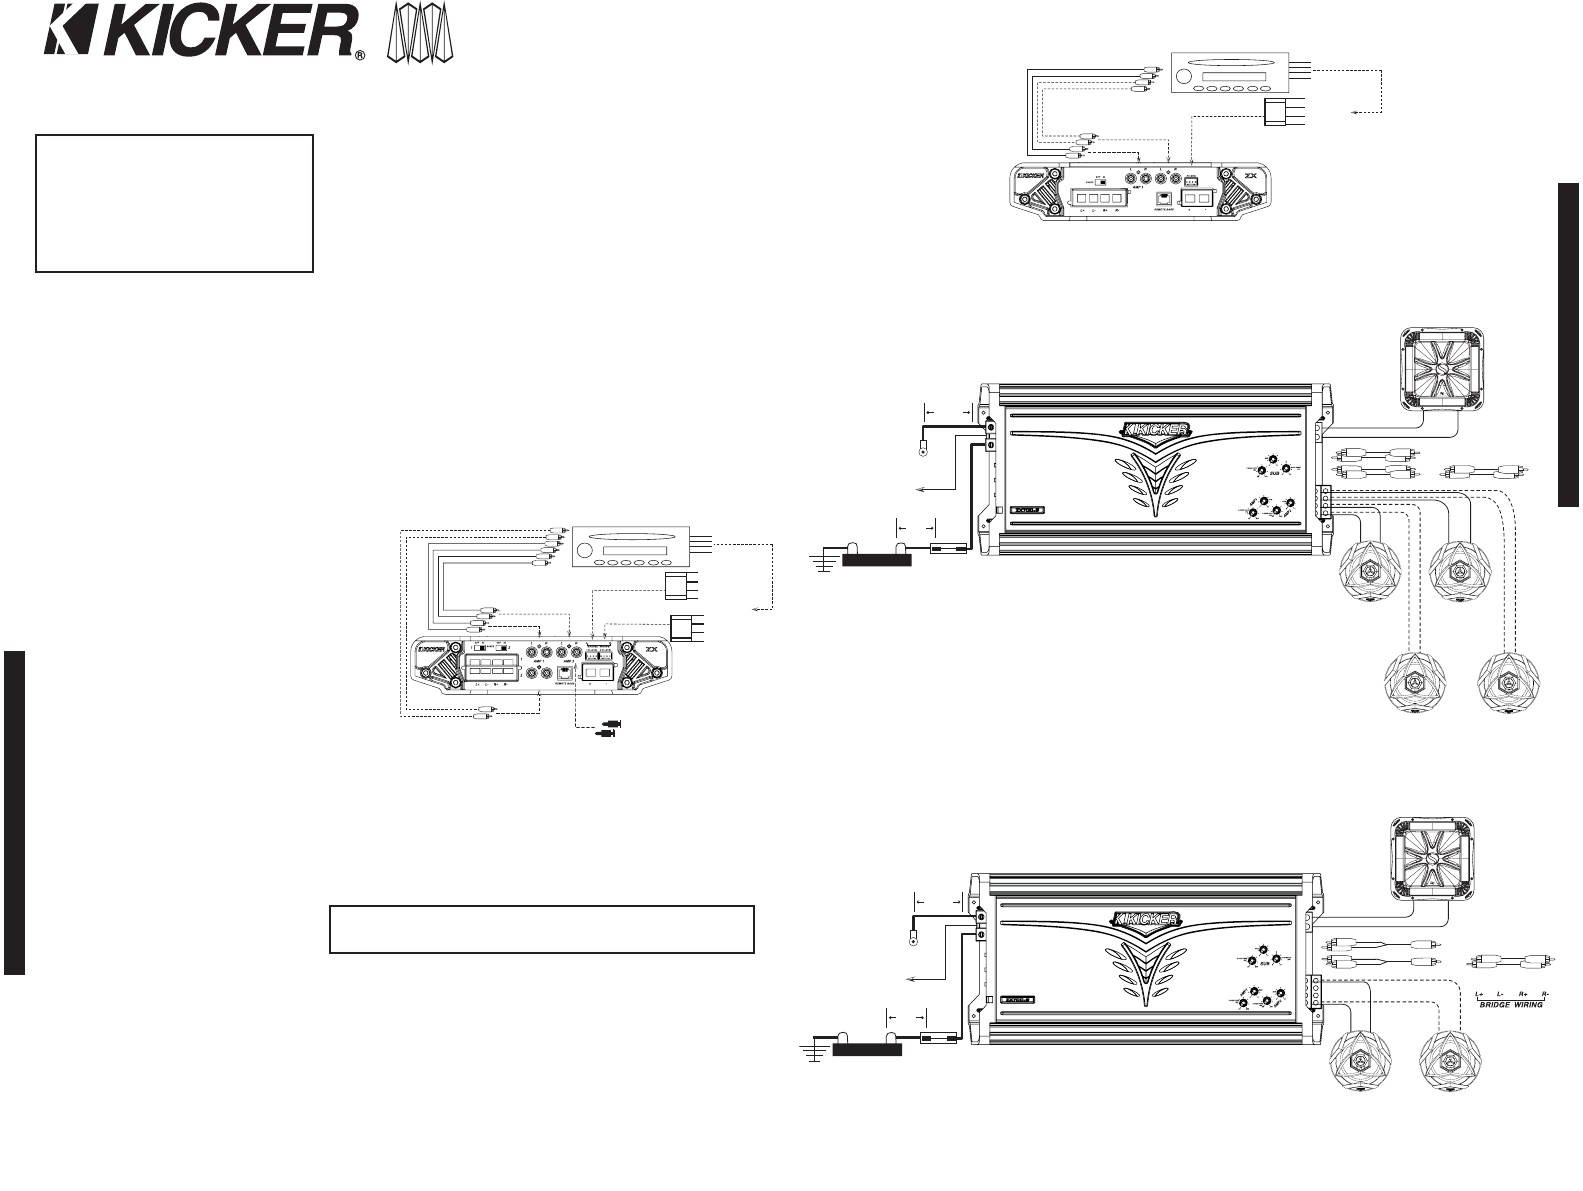 kicker kisl wiring diagram collection